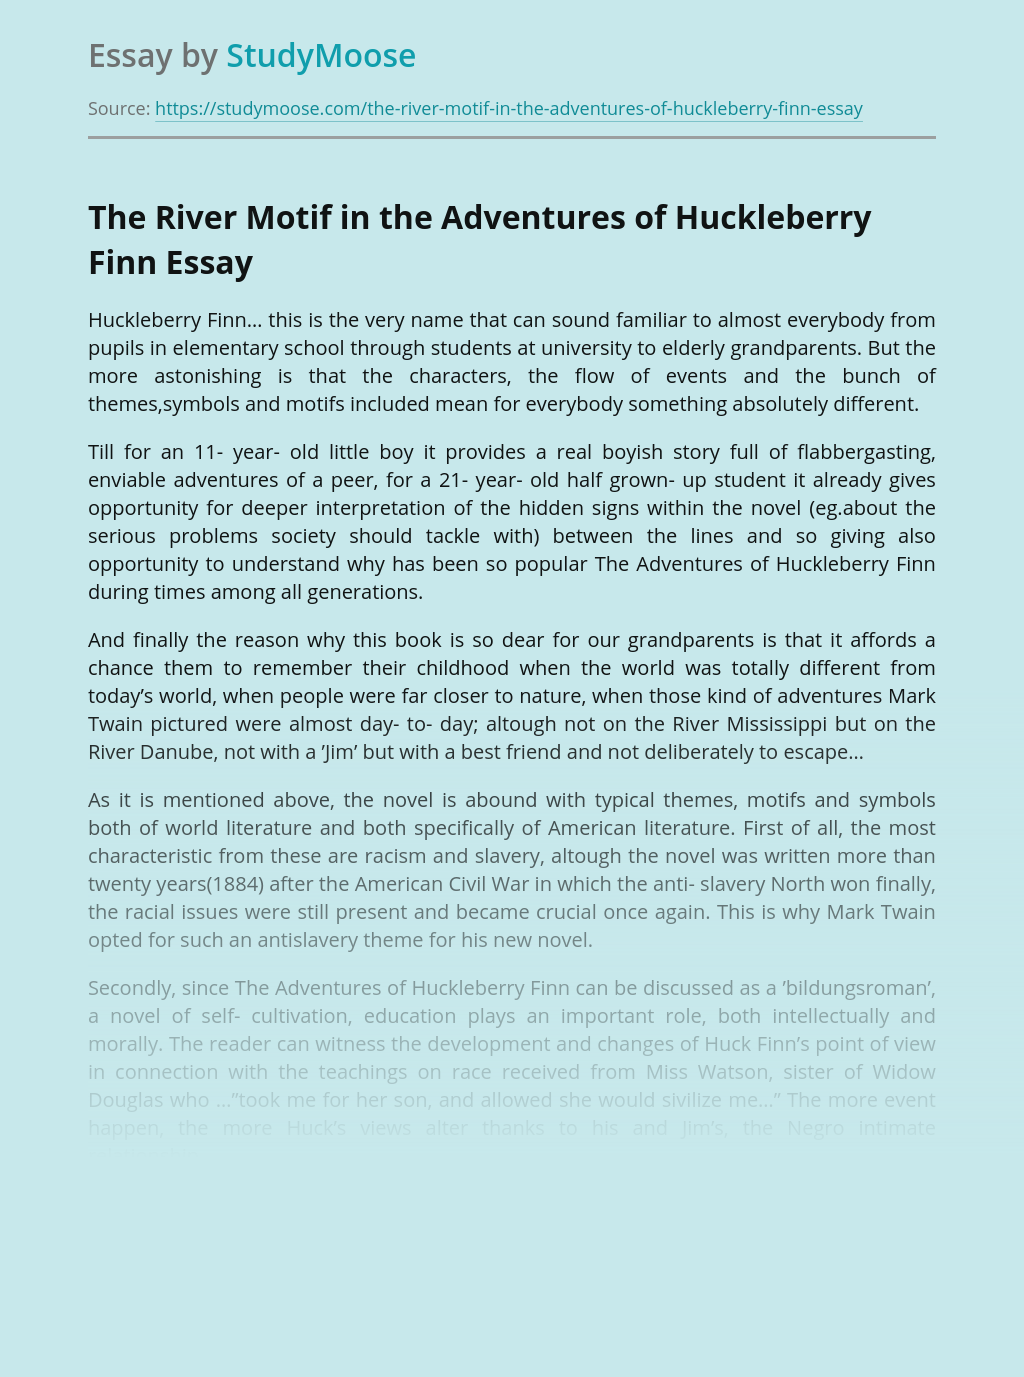 The River Motif in the Adventures of Huckleberry Finn